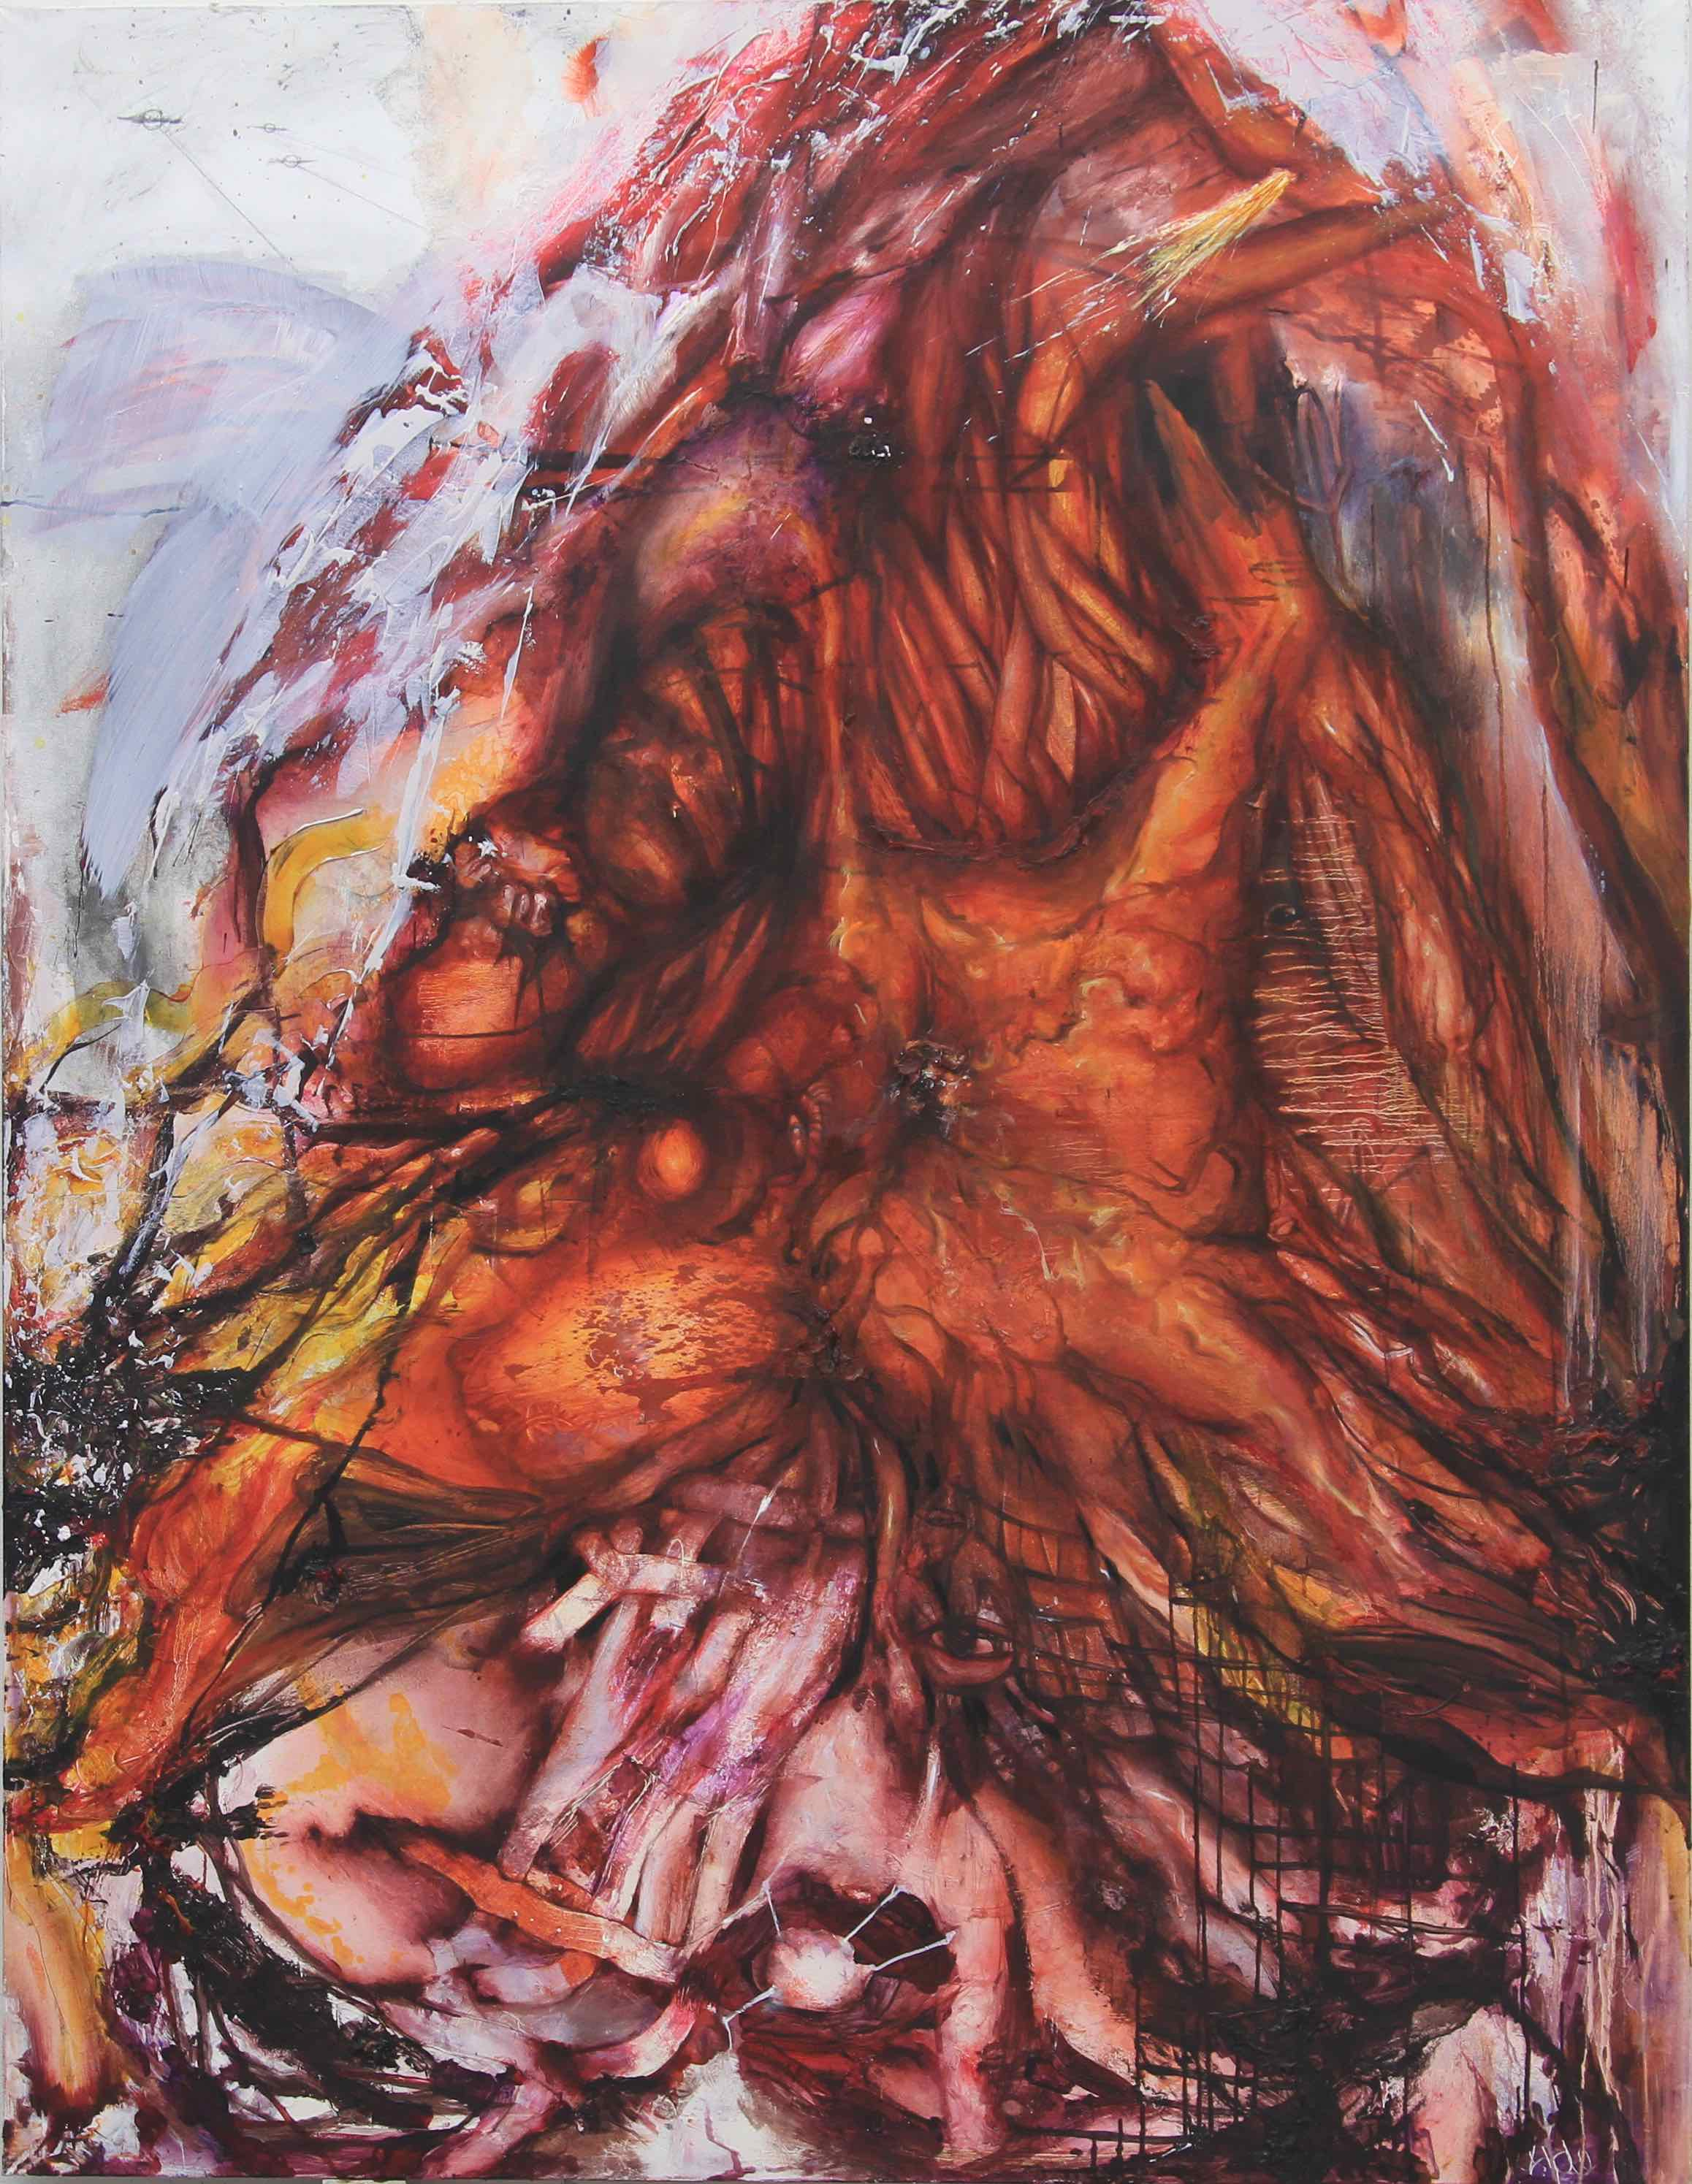 Big Red / 2012 / oil on canvas / 86.61 x 66.92 inches / 220 x 170 cm